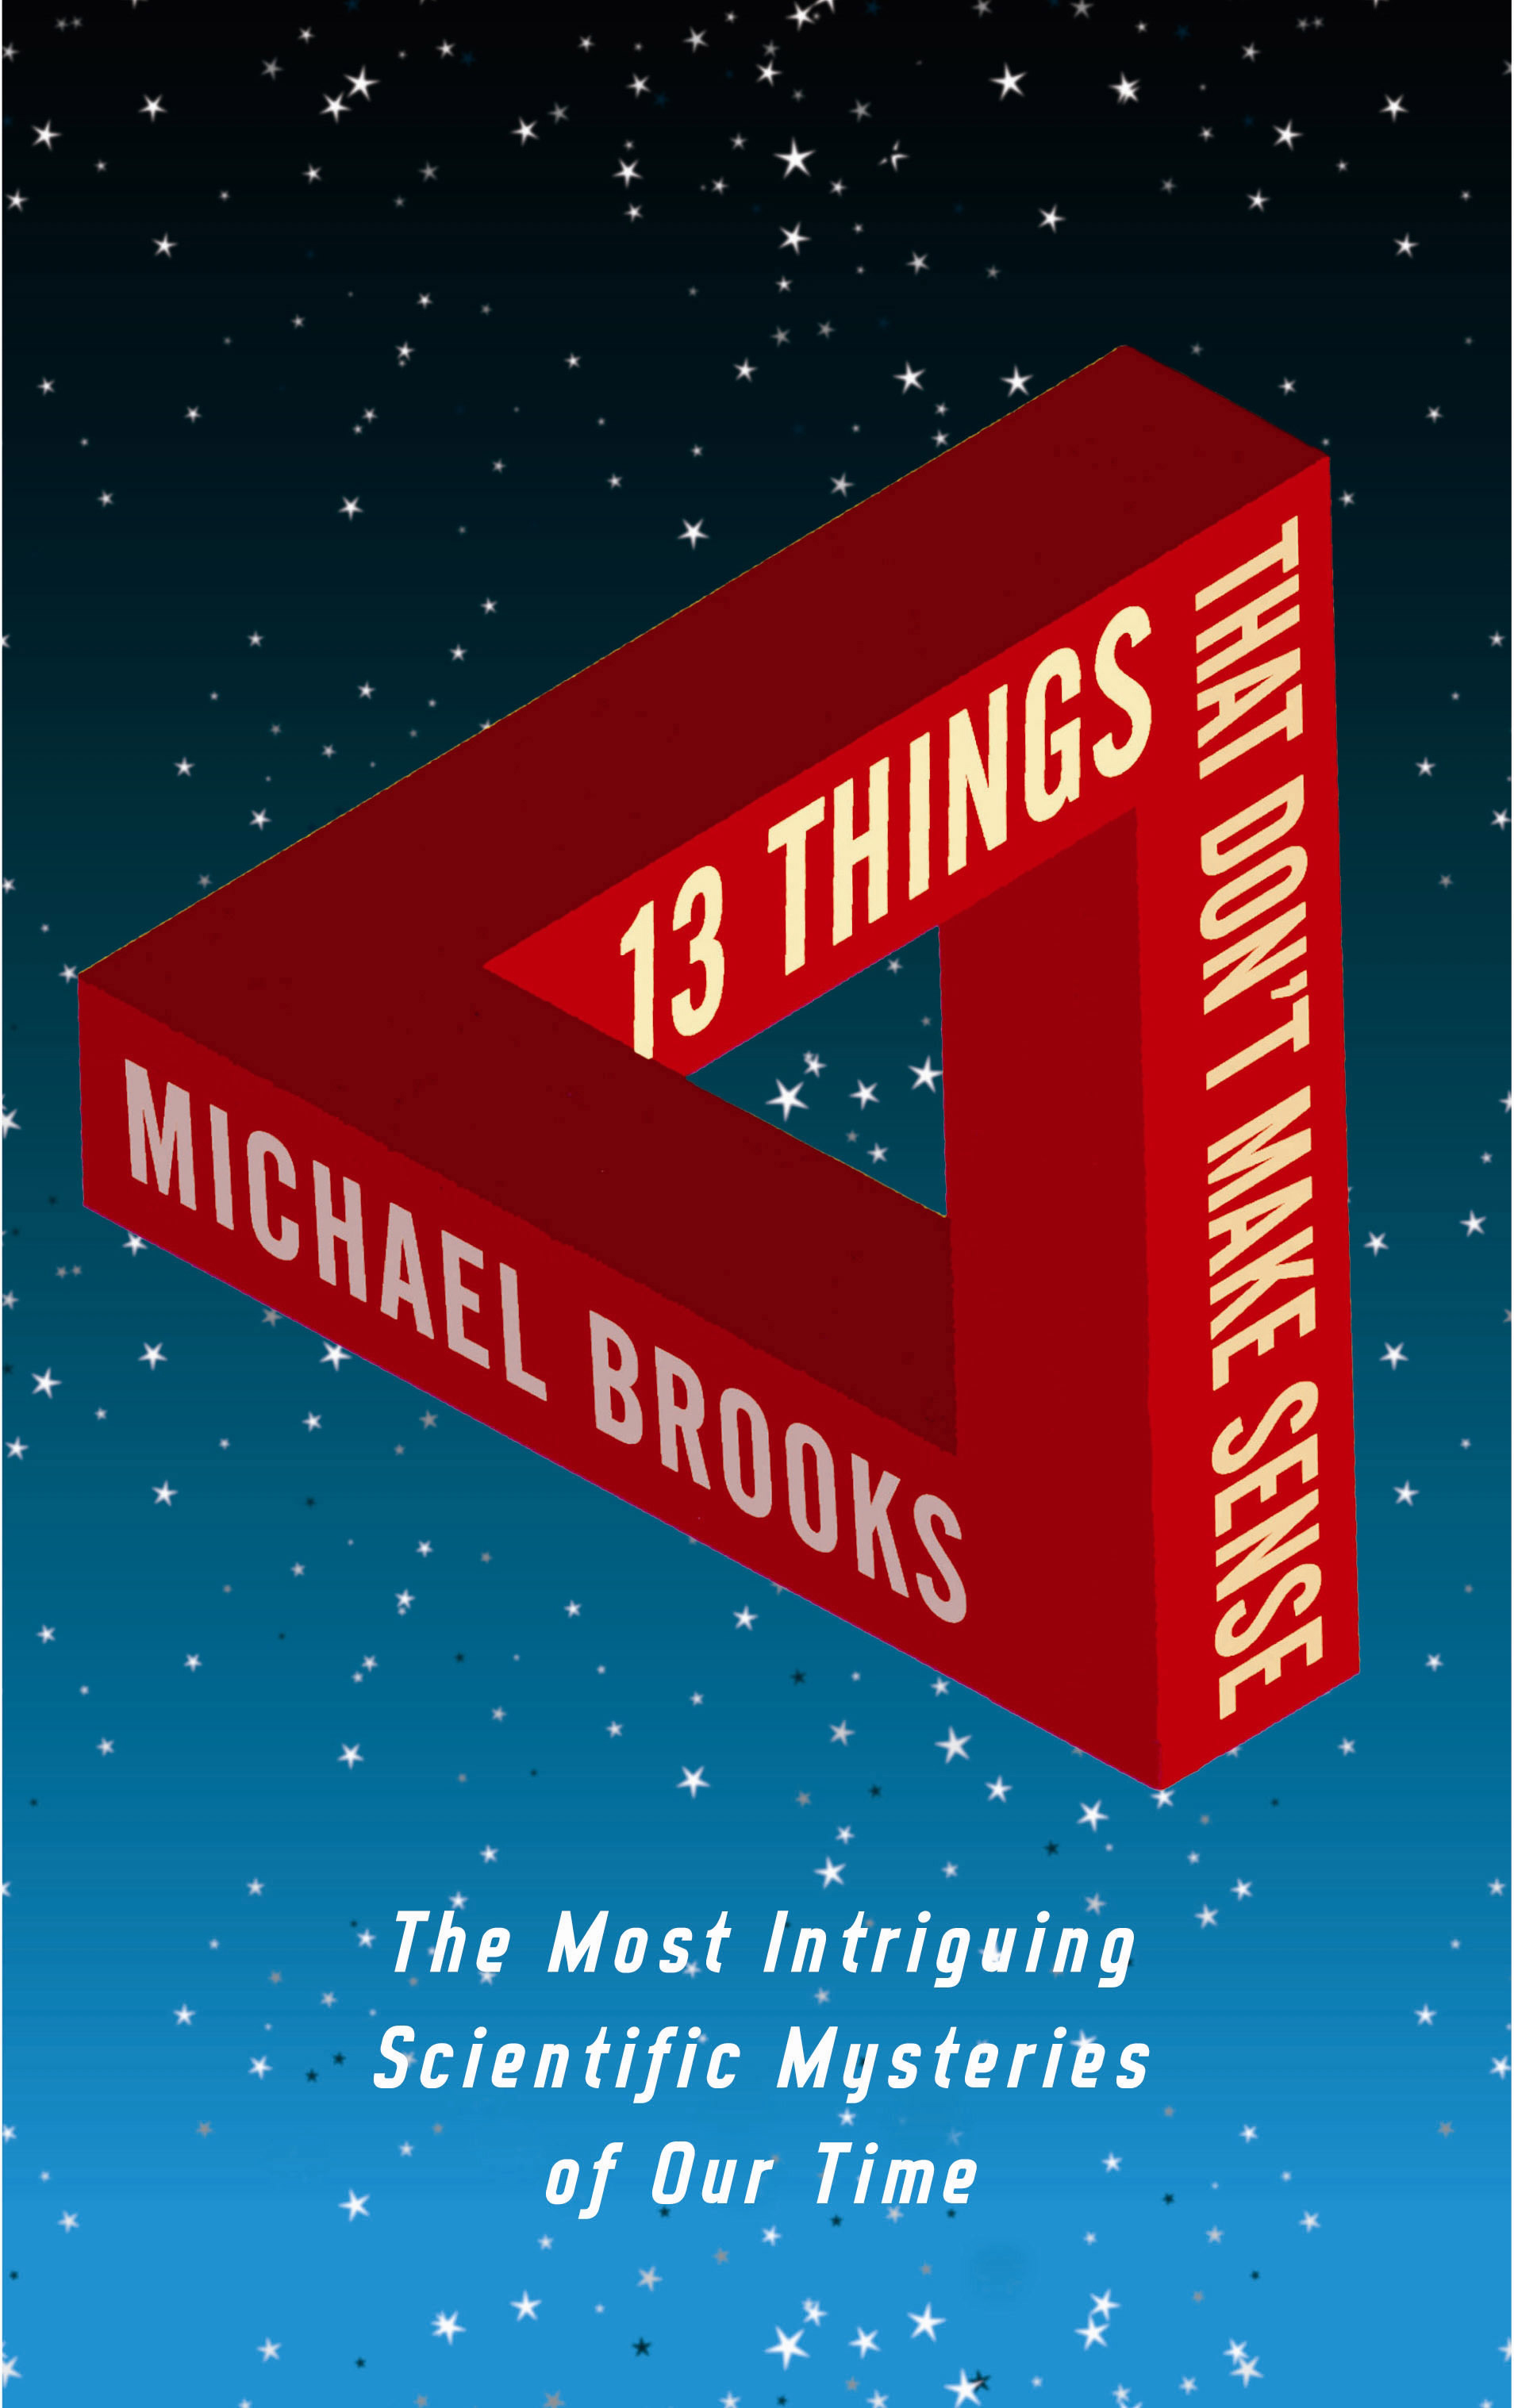 13 things that don t make sense 13 things that don't make sense is a non-fiction book by the british writer michael brooks, published in both the uk and the us during 2008 [1] [2] [3] it became a best-selling paperback in 2010 [ citation needed .